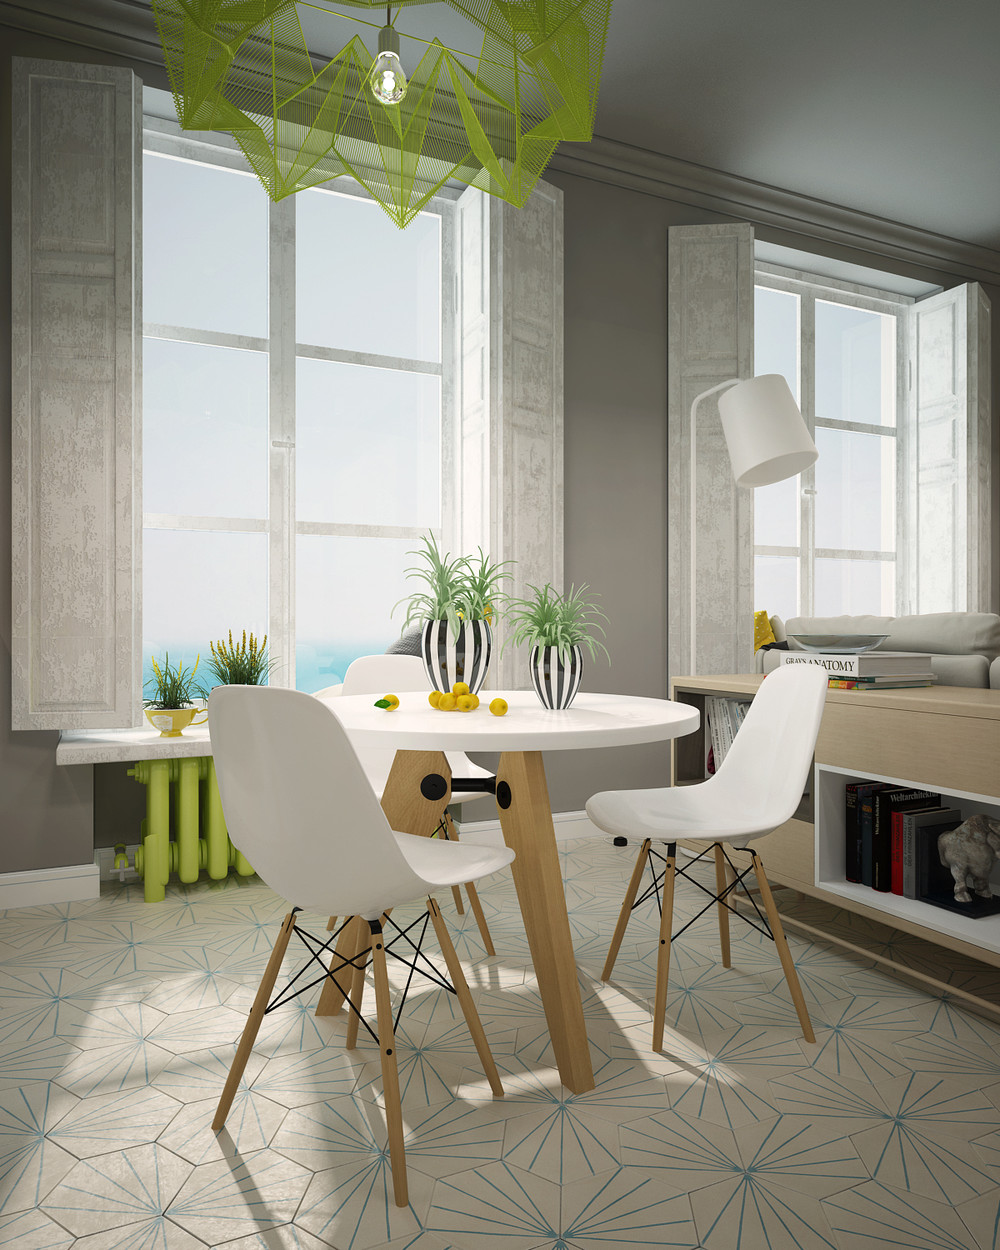 Small apartment dining set ideas